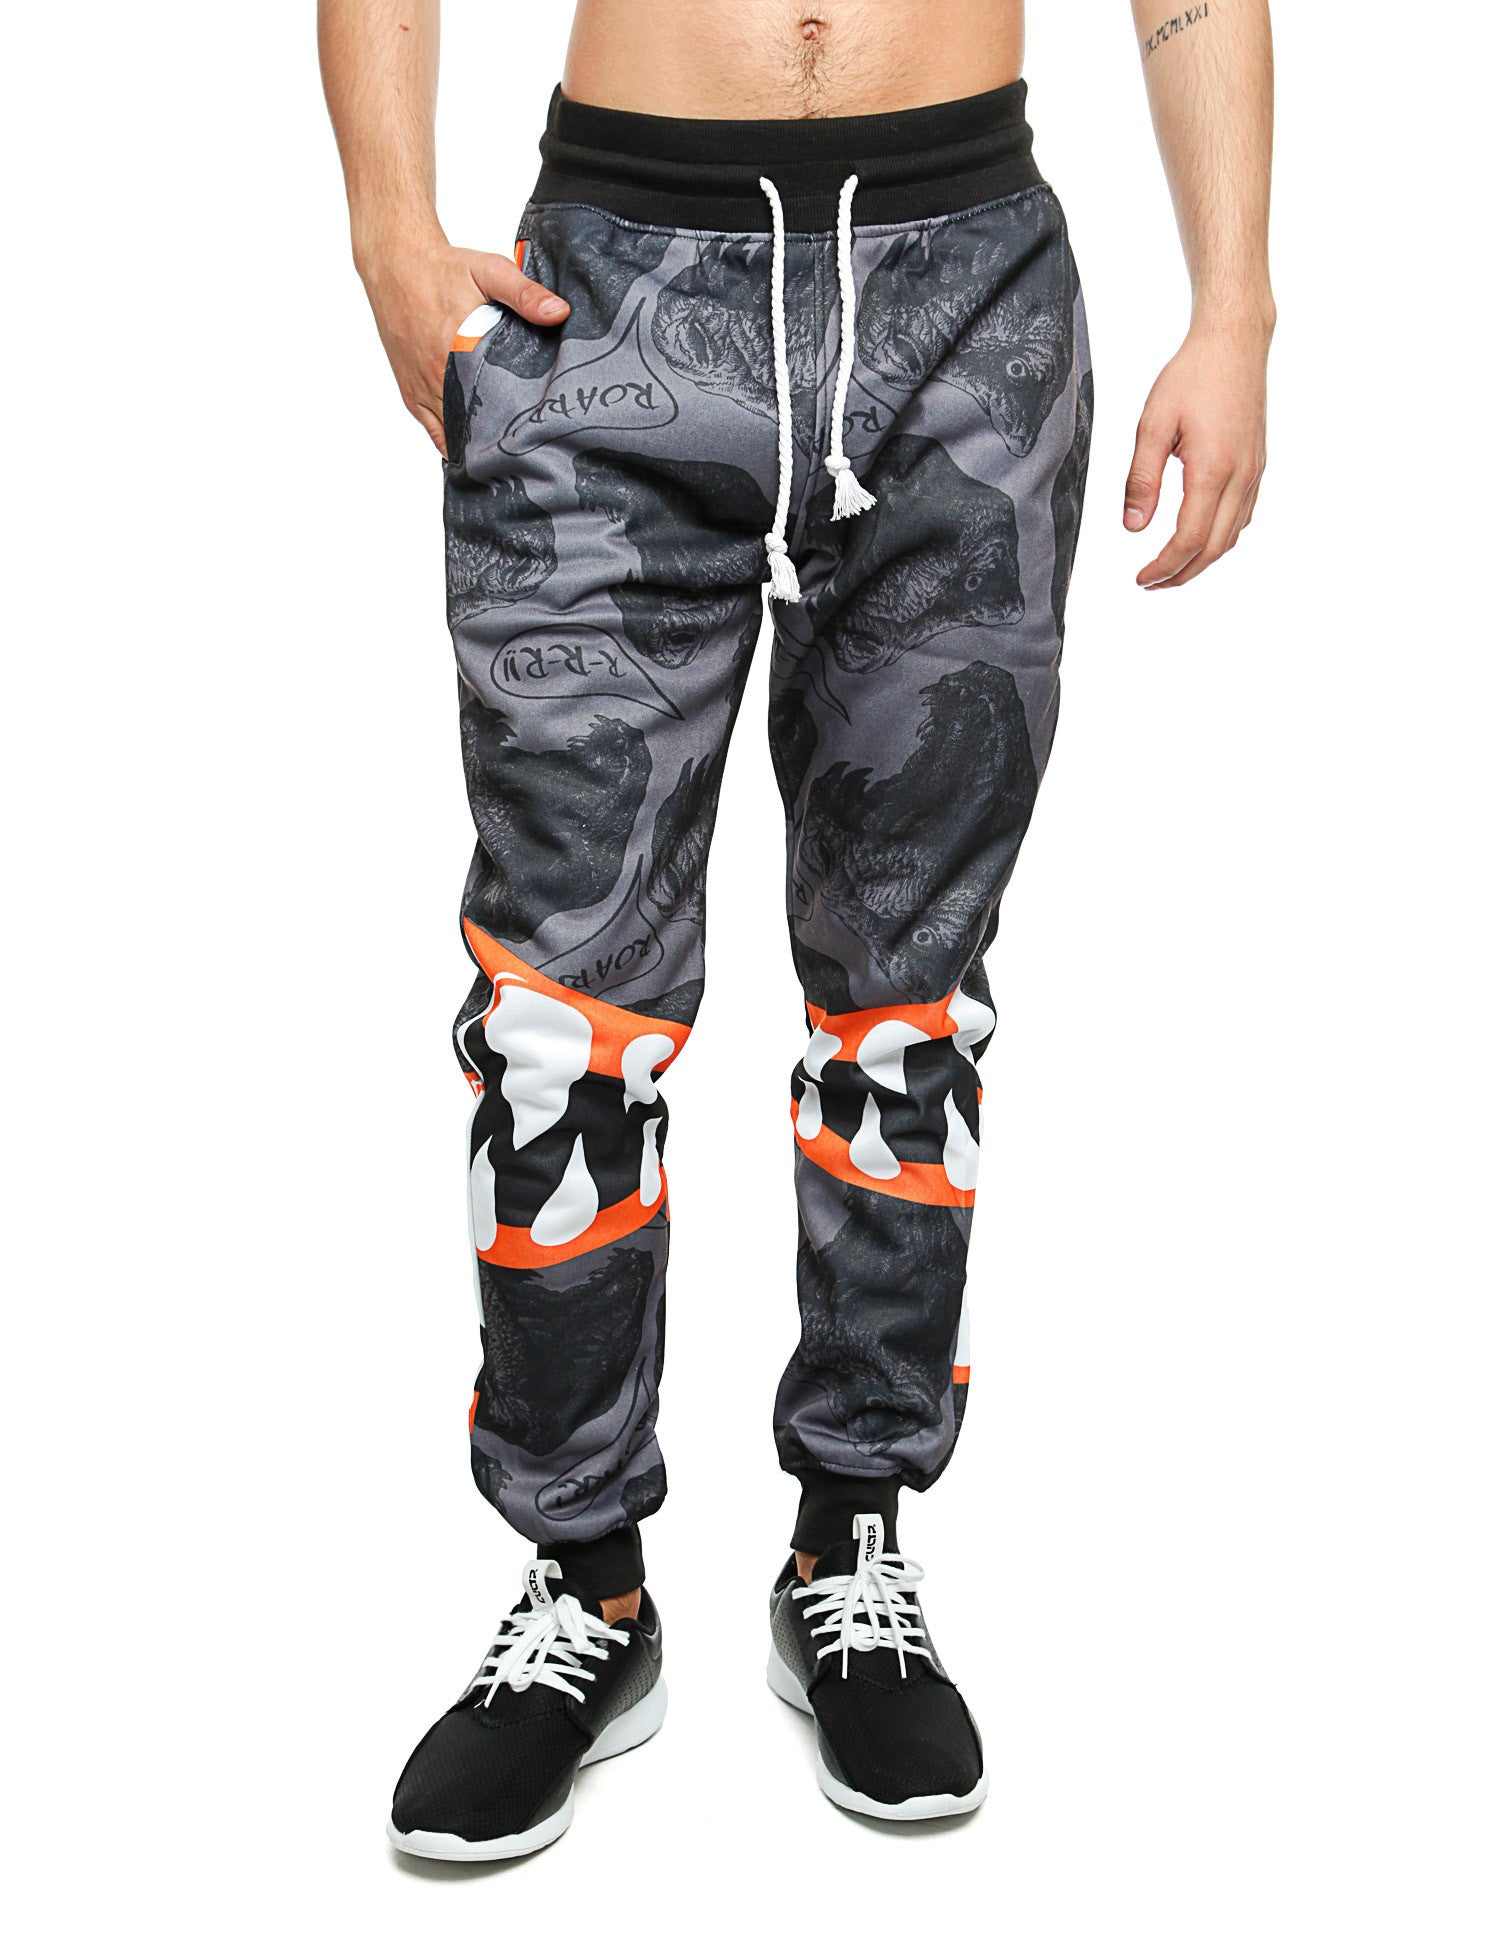 Imperious ?Dinosaur? All Over Sweatpant FP530 Grey